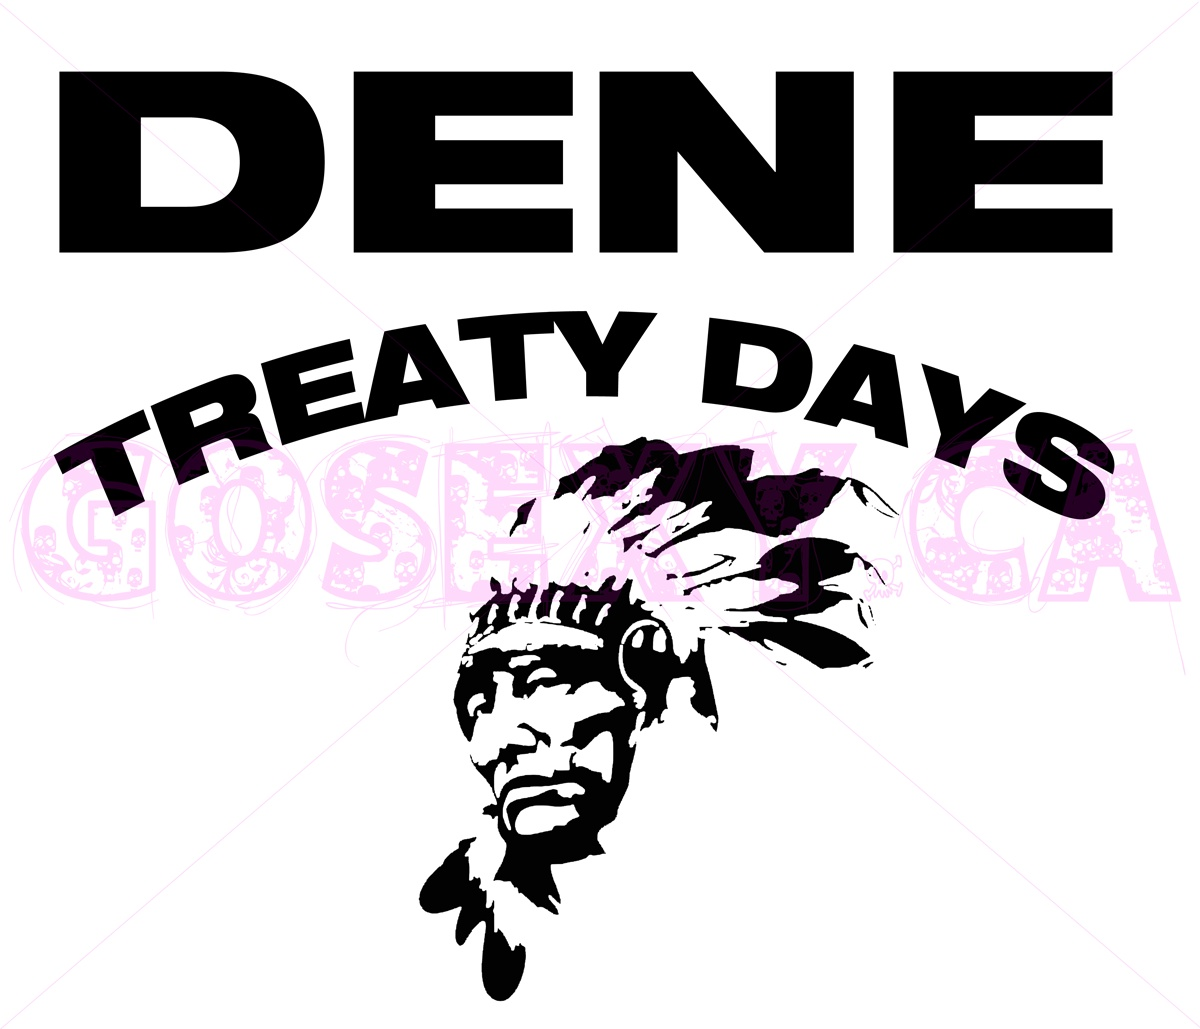 https://0901.nccdn.net/4_2/000/000/056/7dc/DENE--treaty-day-gosexyca-1200x1029.jpg